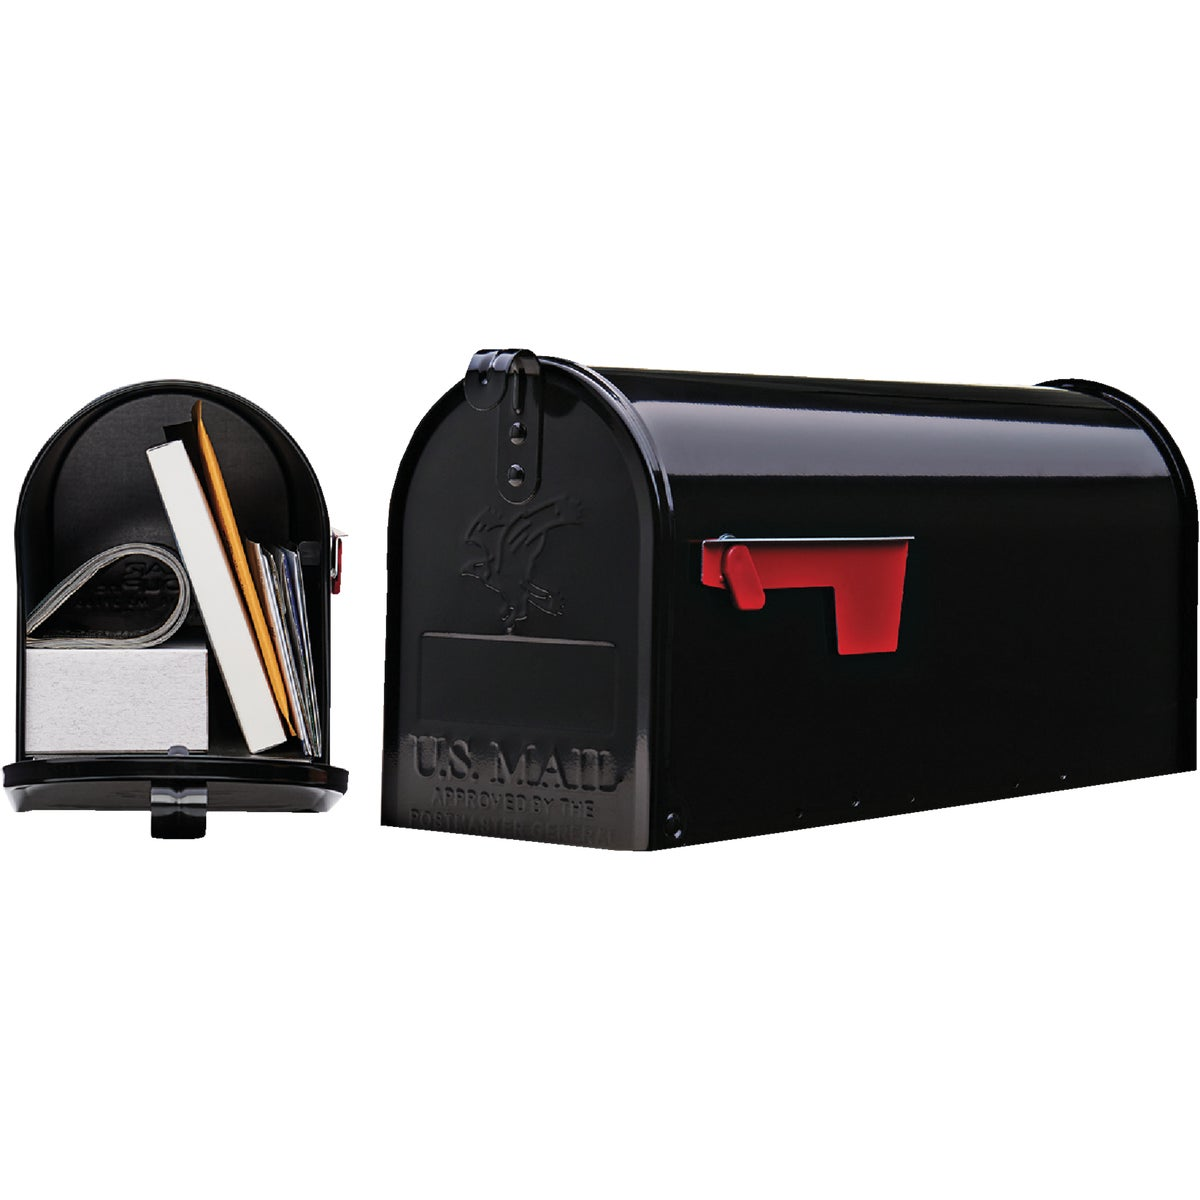 BLACK T1 MAILBOX - E11B#T1 by Solar Group